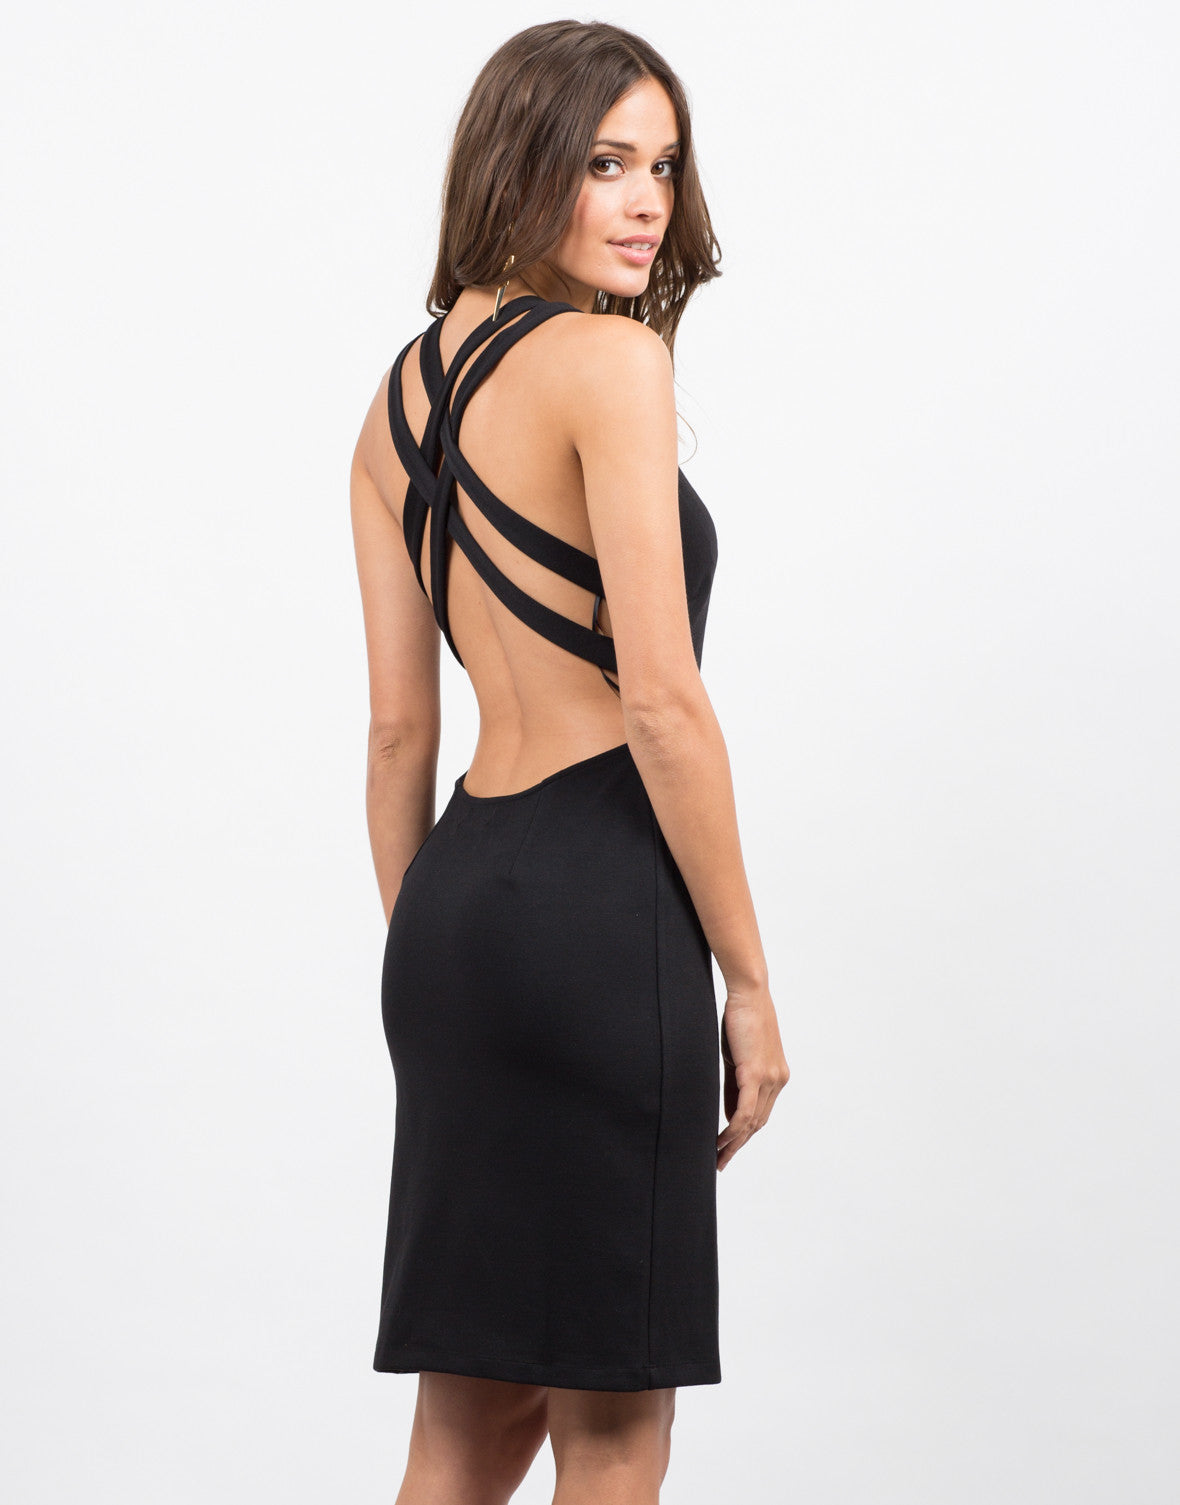 Back View of Double Cross Back Dress